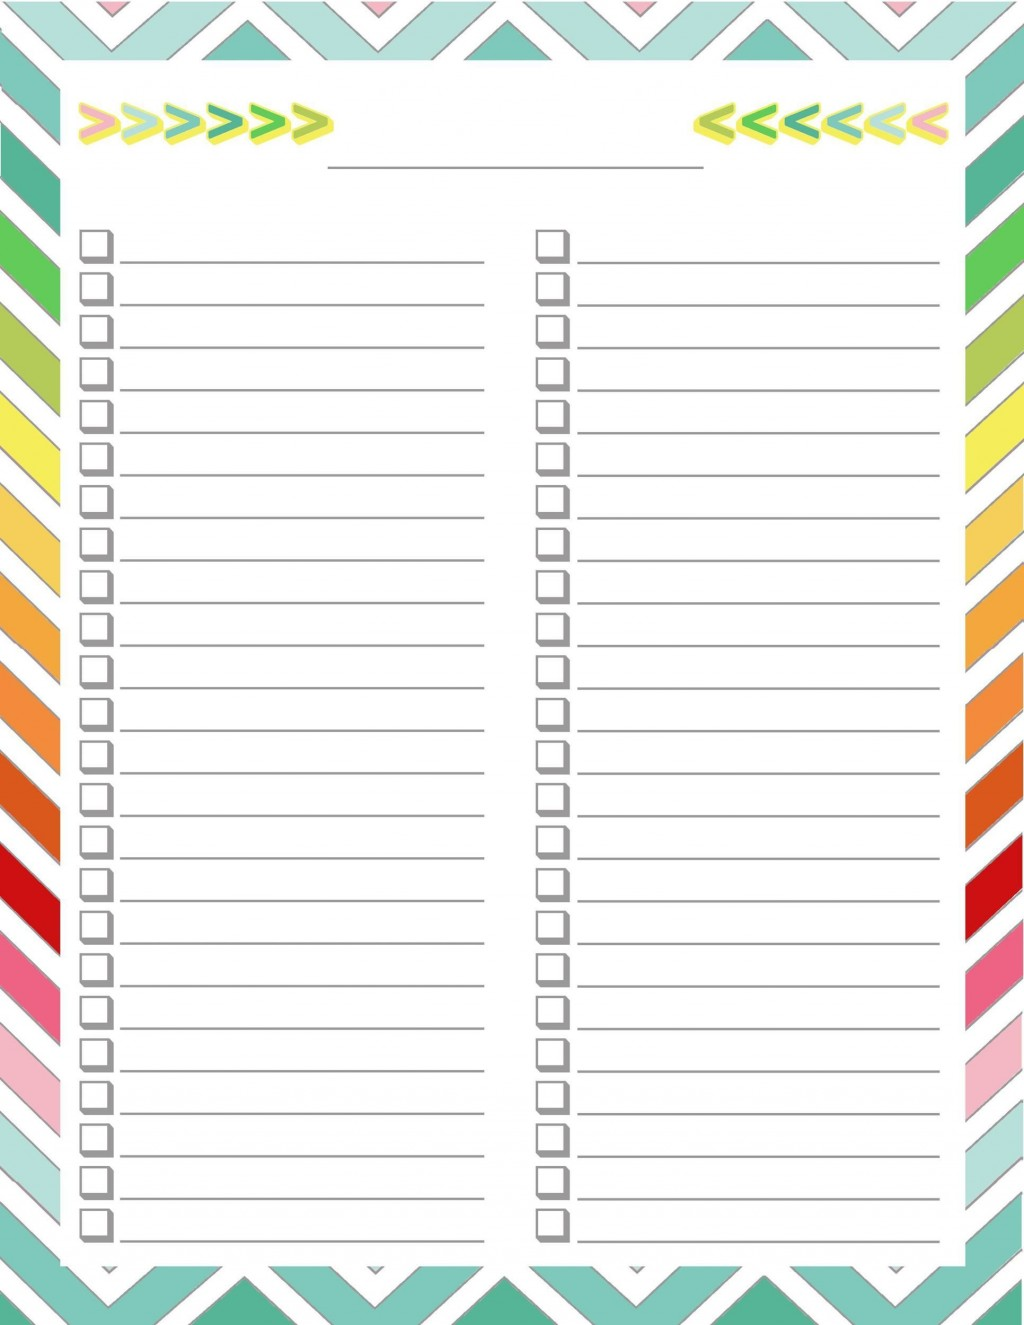 004 Archaicawful To Do Checklist Template Concept Large